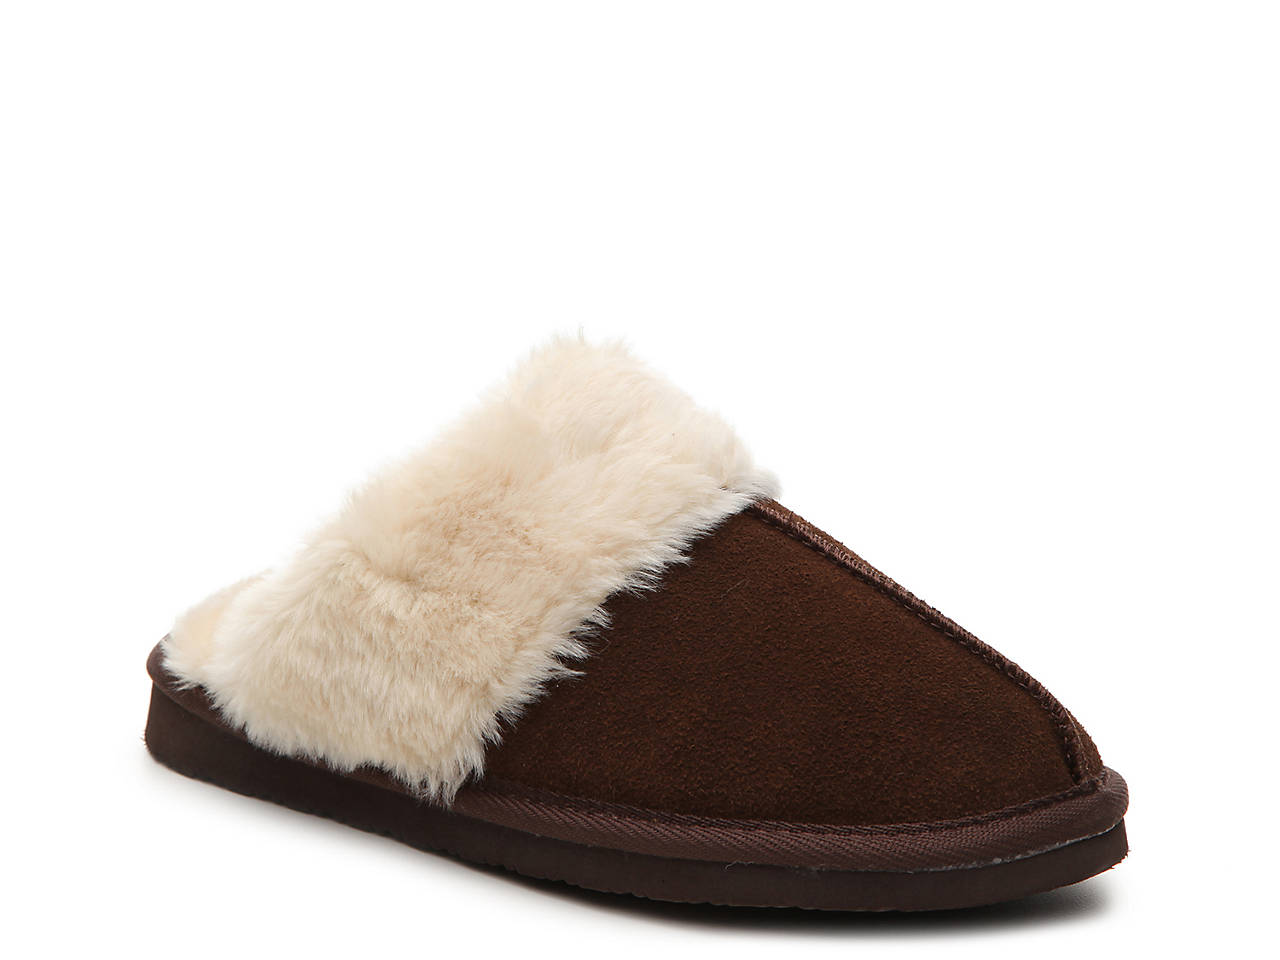 912a59d07523 Minnetonka Chesney Slide Slipper Women's Shoes | DSW